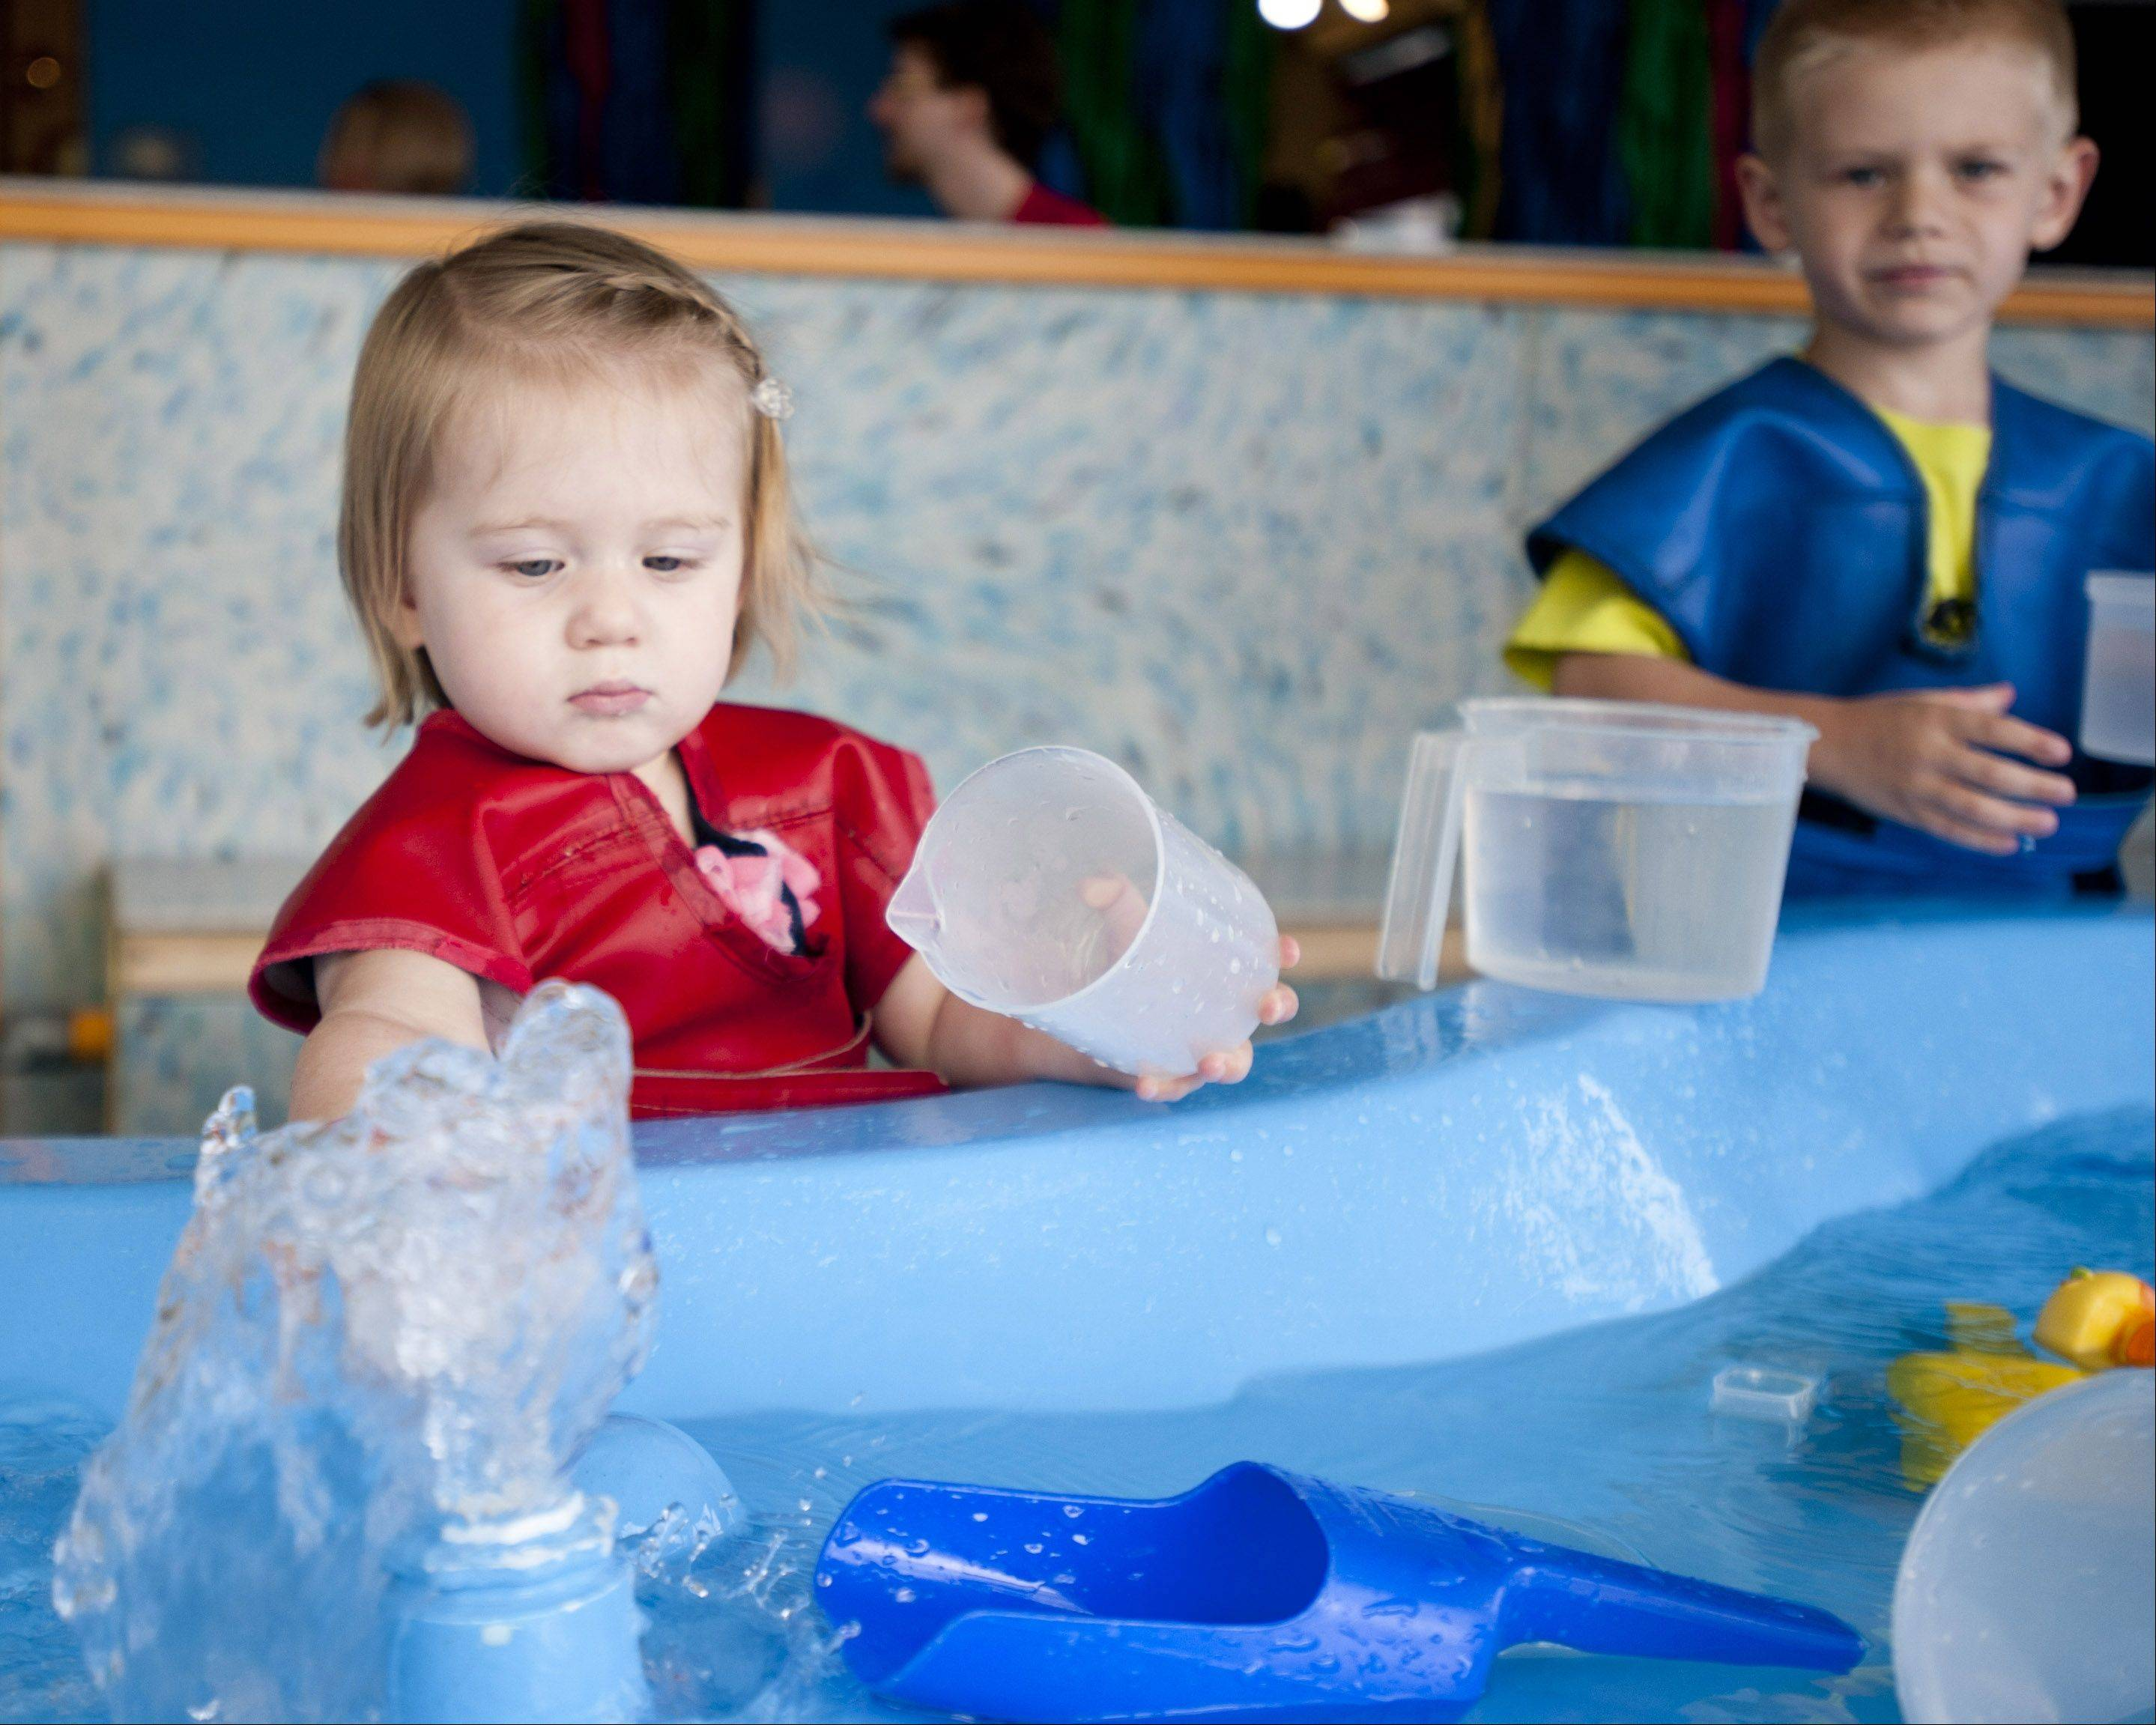 Keeley Sparks, 1, enjoys the WaterWays exhibit during the DuPage Children's Museum's 25th anniversary celebration on Sunday. The event featured an insect zoo, train rides and art activities.